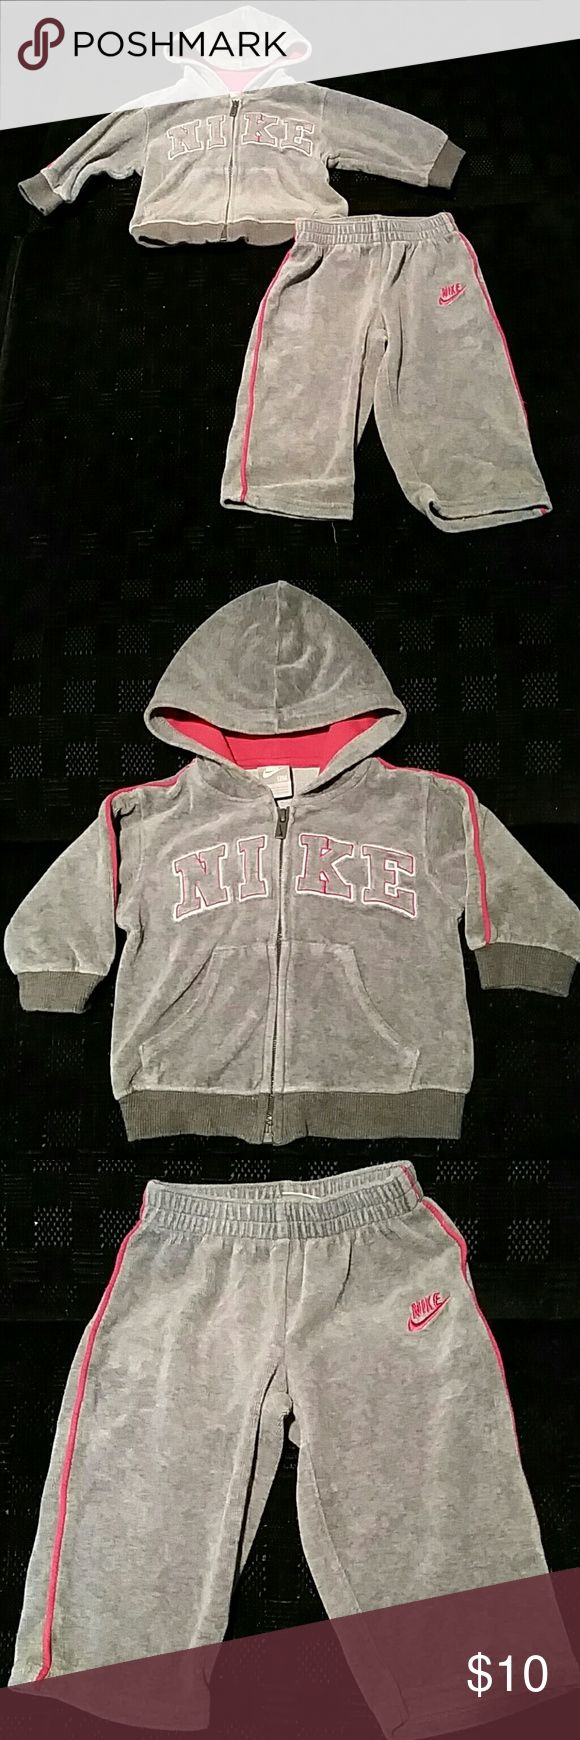 Nike Sweat Suit for Baby Boy Grey & Red Nike Sweat Suit for Baby Boy Nike  Matching Sets